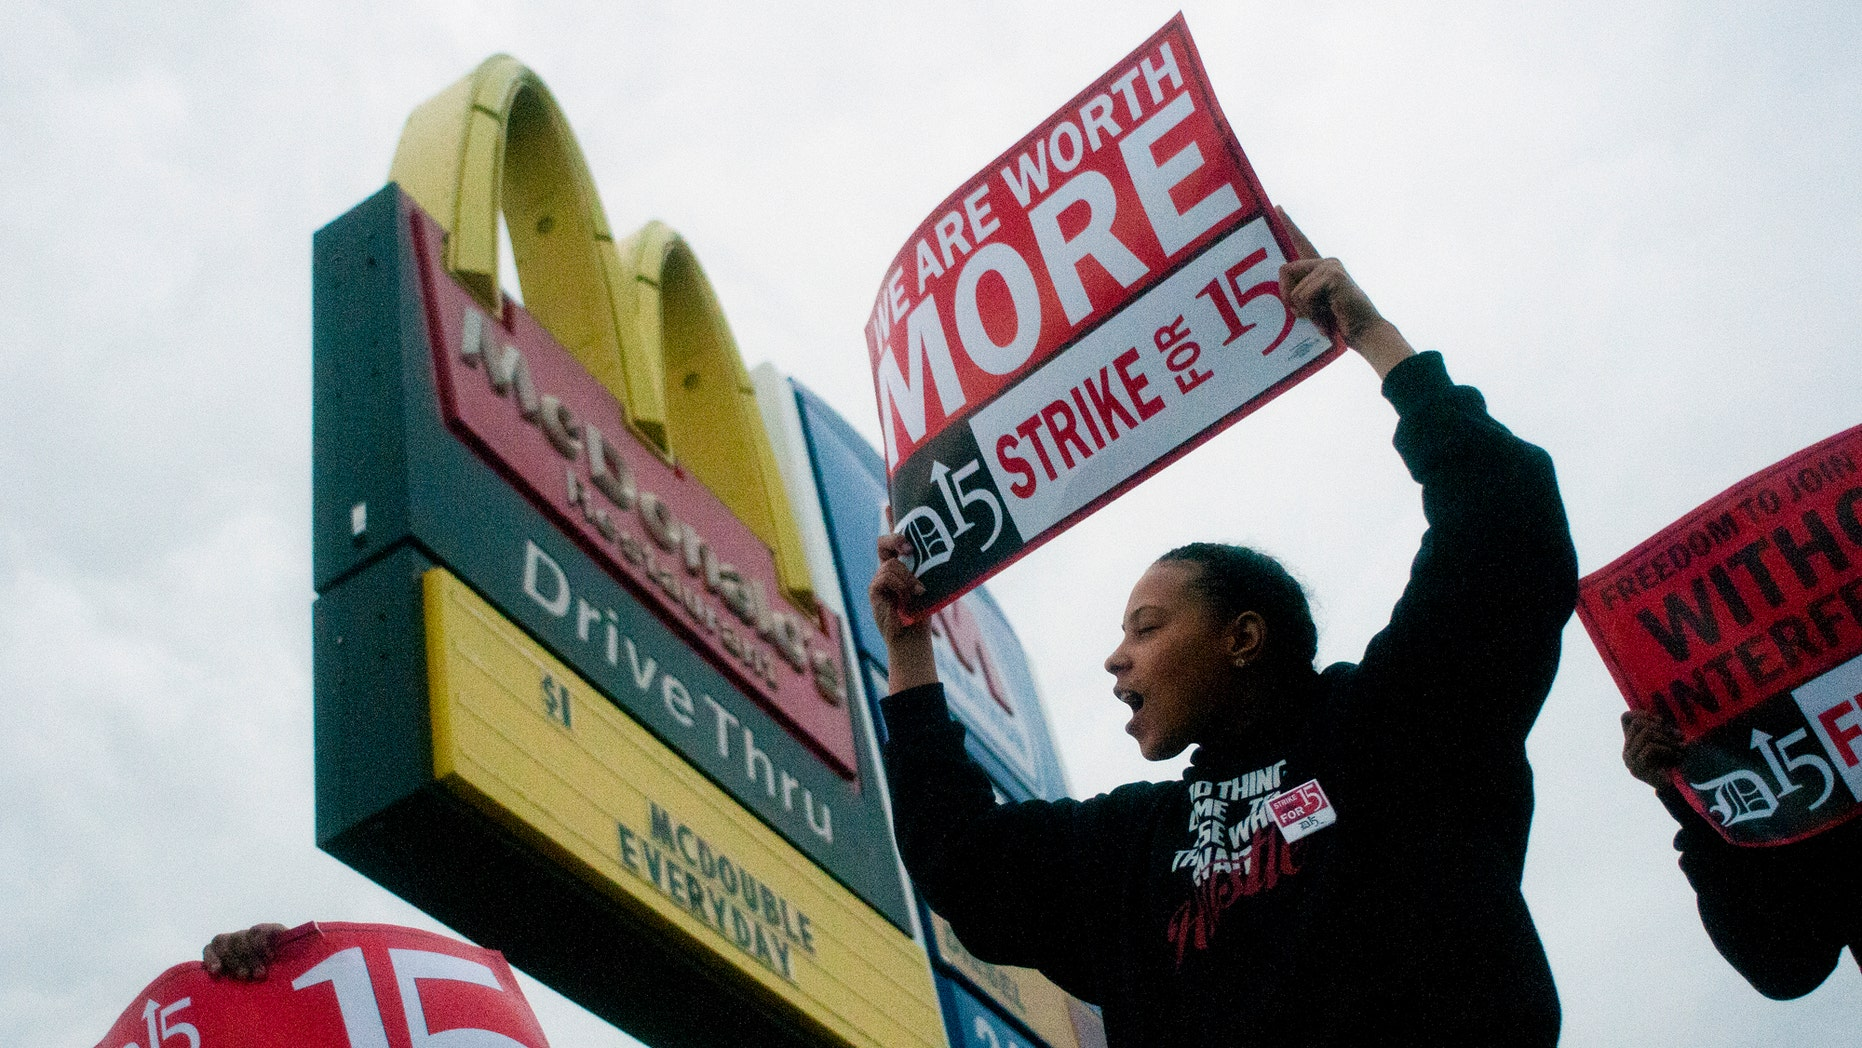 Fast-food worker Michelle Osborn, 23, of Flint, Mich. shouts out chants as she and a few dozen others strike outside of a McDonald's restaurant on Wednesday, July 31, 2013 in Flint. A few thousand fast-food workers in seven cities took to the streets demanding better pay, the right to unionize and a more than doubling of the federal minimum hourly wage from $7.25 to $15. (AP Photo/The Flint Journal, Jake May)